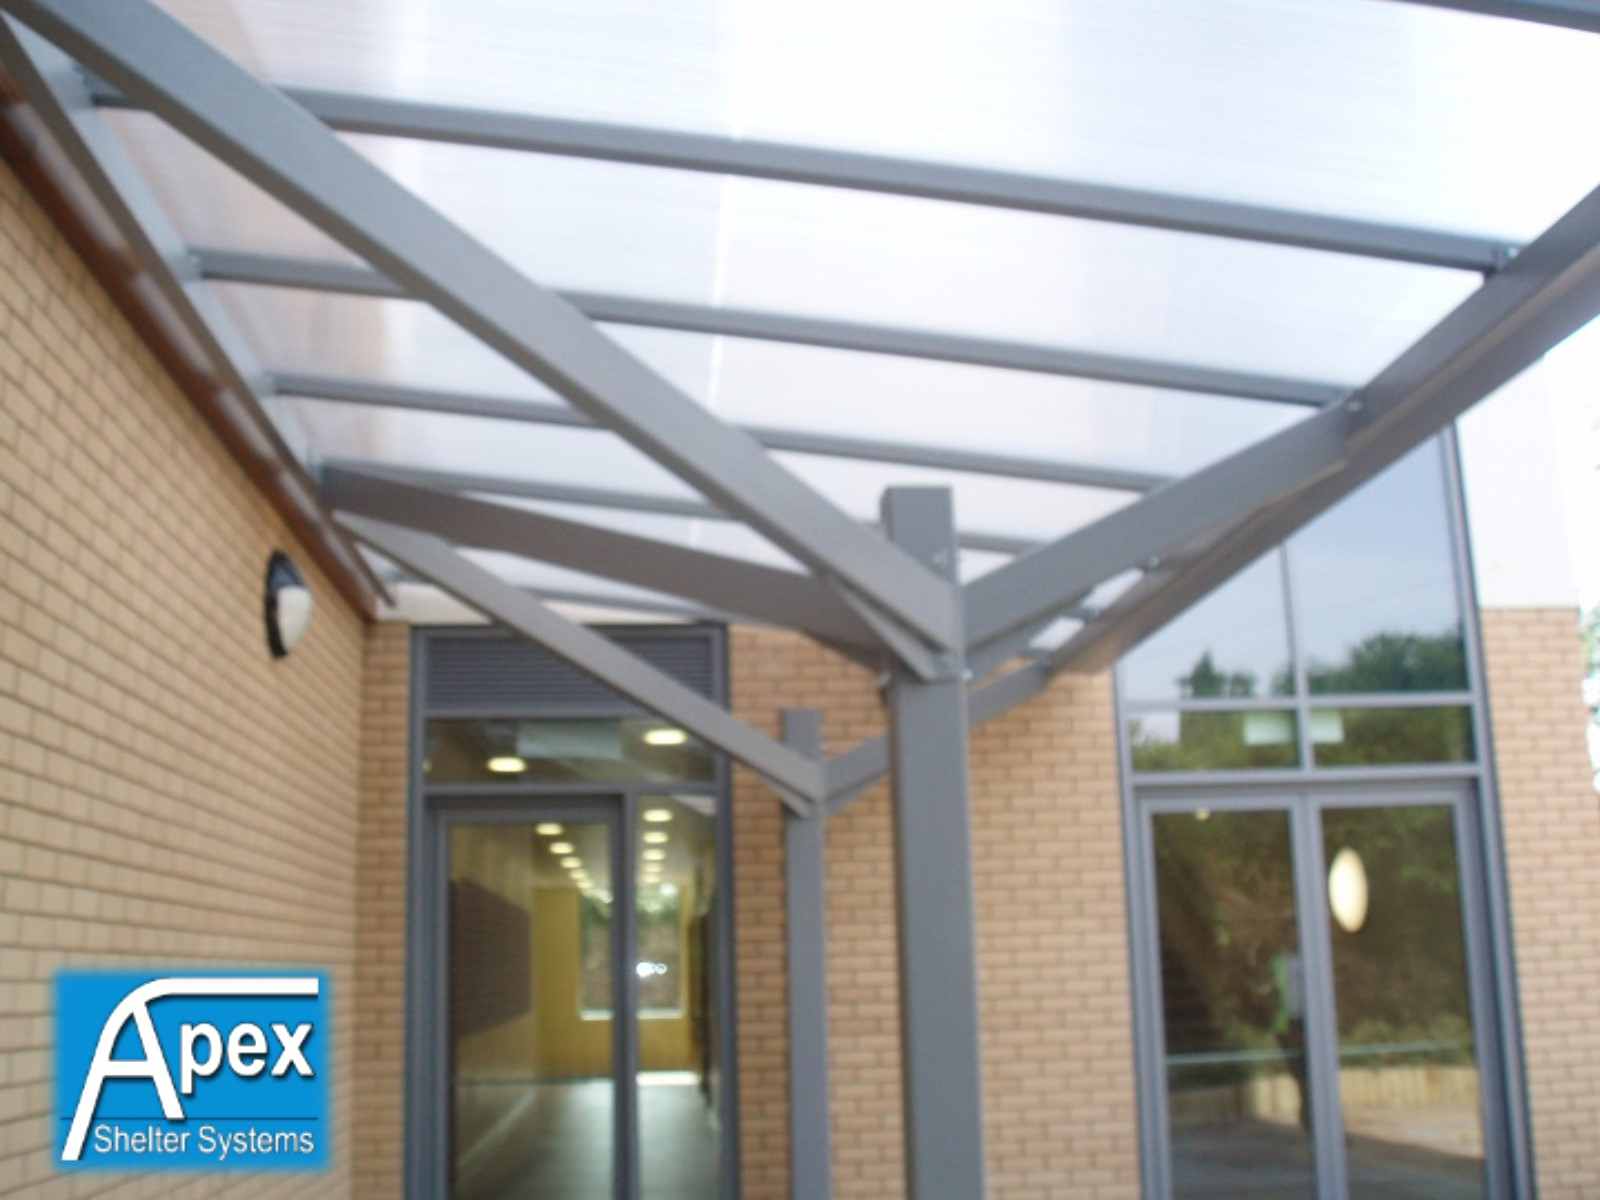 Paisley Entrance Canopy & Paisley Entrance Canopy Door Canopy | Apex Shelters